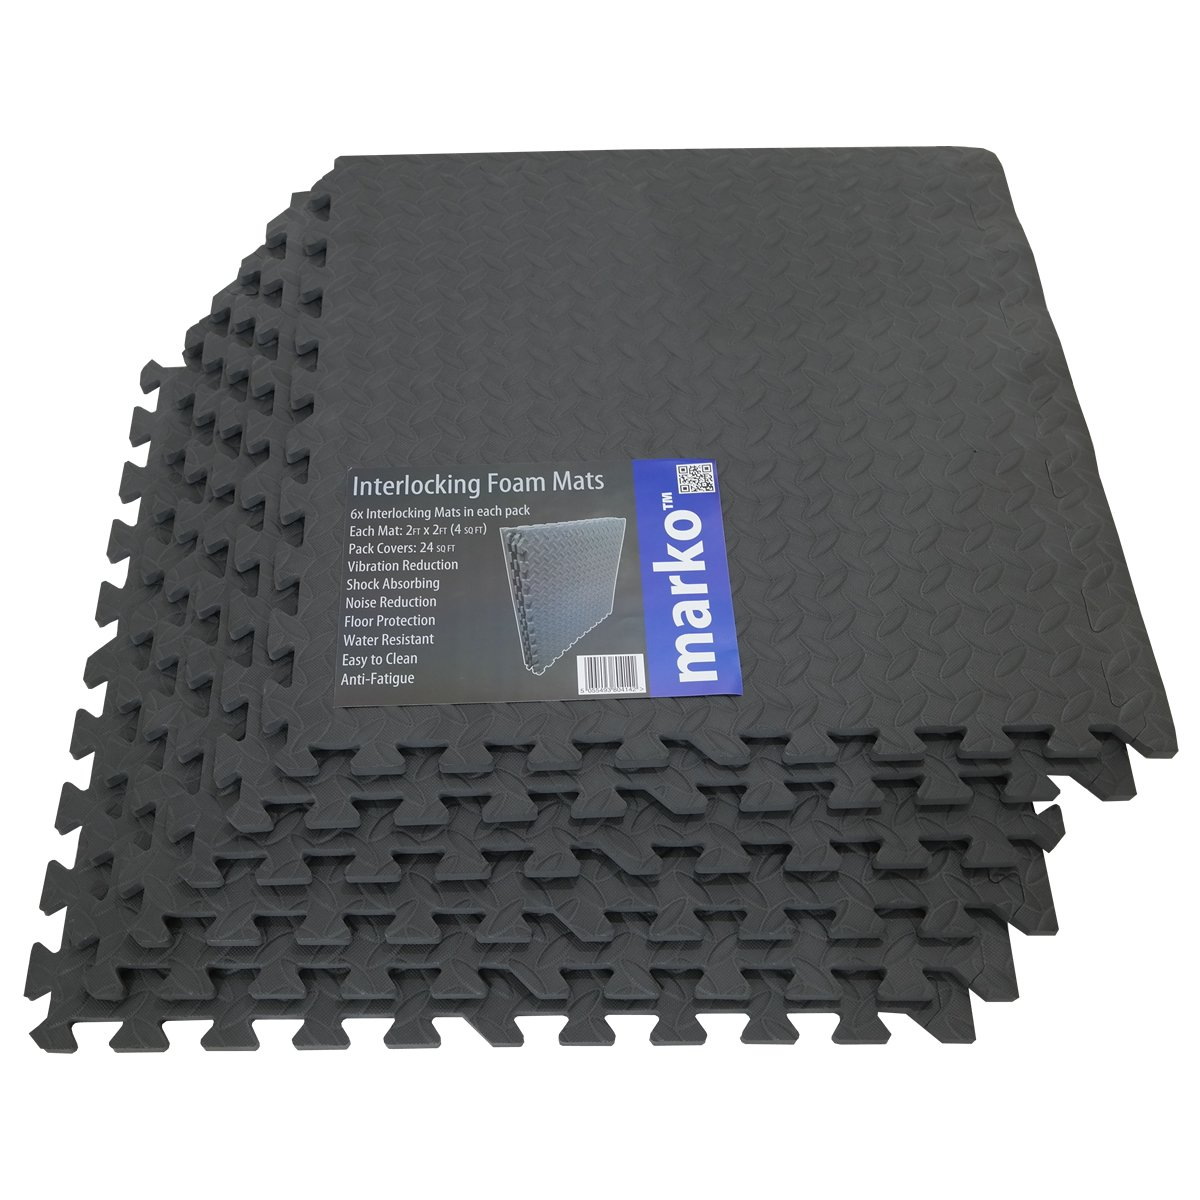 24 sq ft interlocking foam mats tiles gym play garage workshop 24 sq ft interlocking foam mats tiles gym play garage workshop floor dark grey amazon sports outdoors doublecrazyfo Choice Image